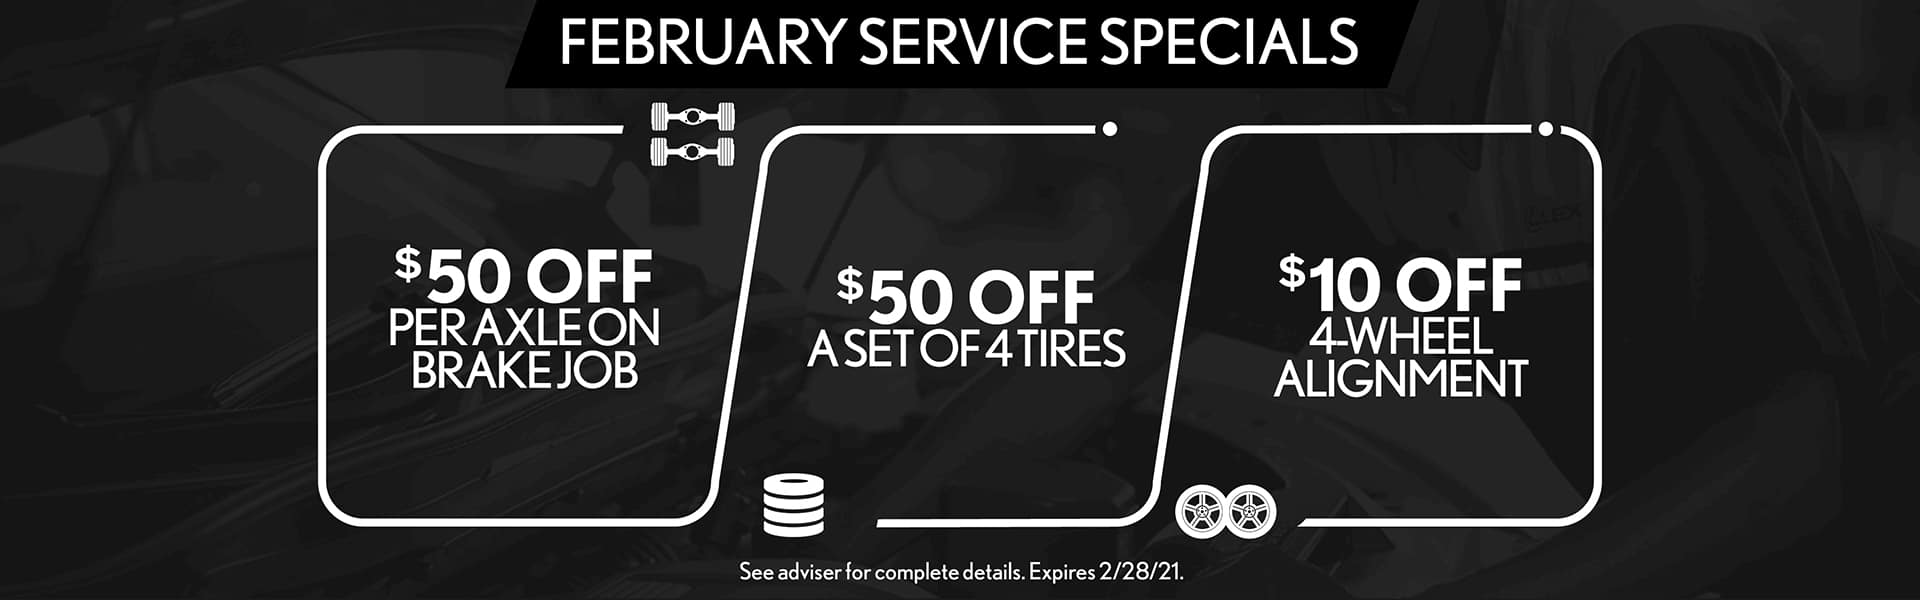 February Service Specials